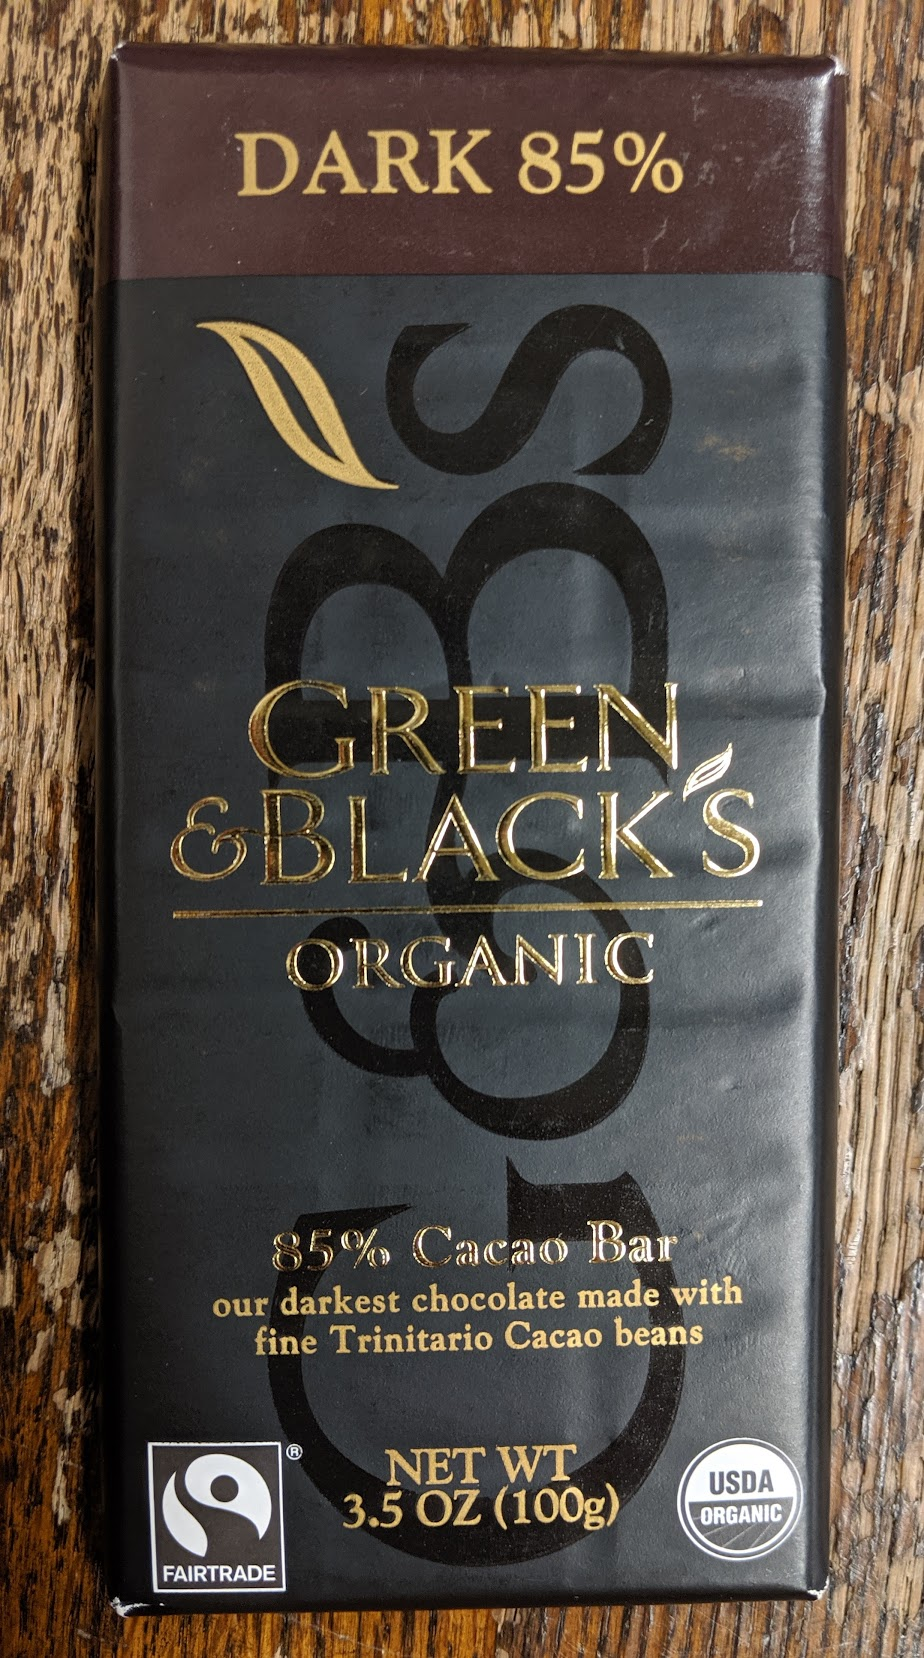 85% green & black's bar